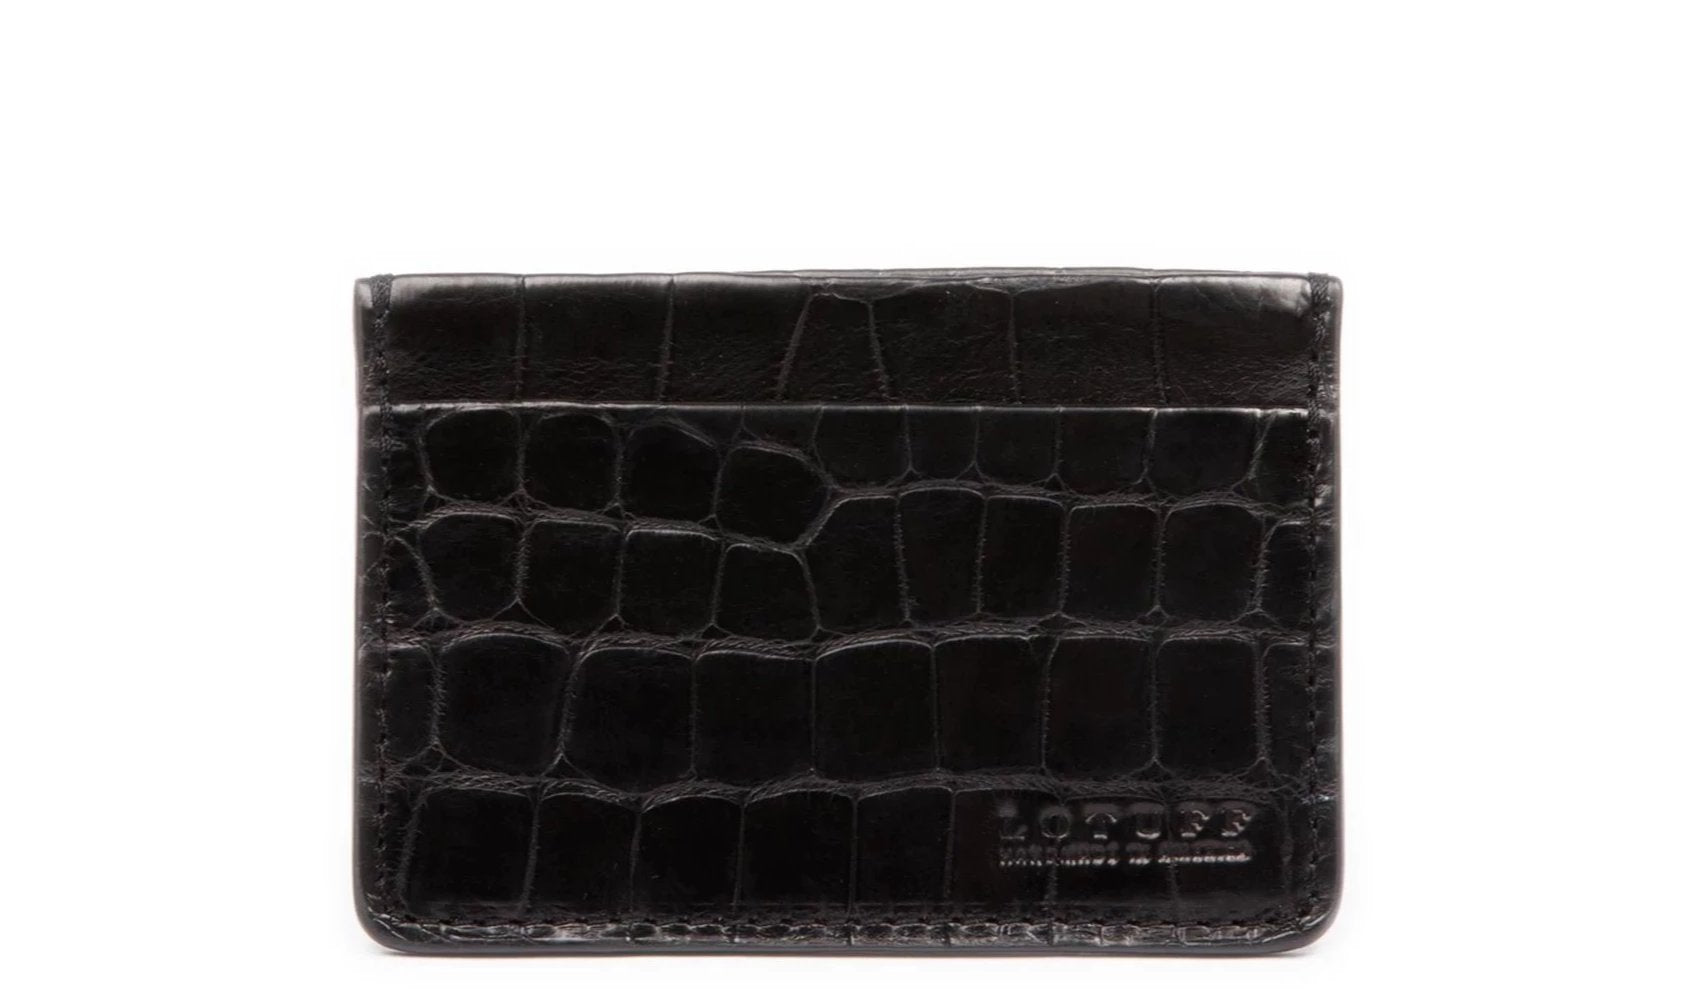 American Alligator Credit Card Wallet Black Alligator